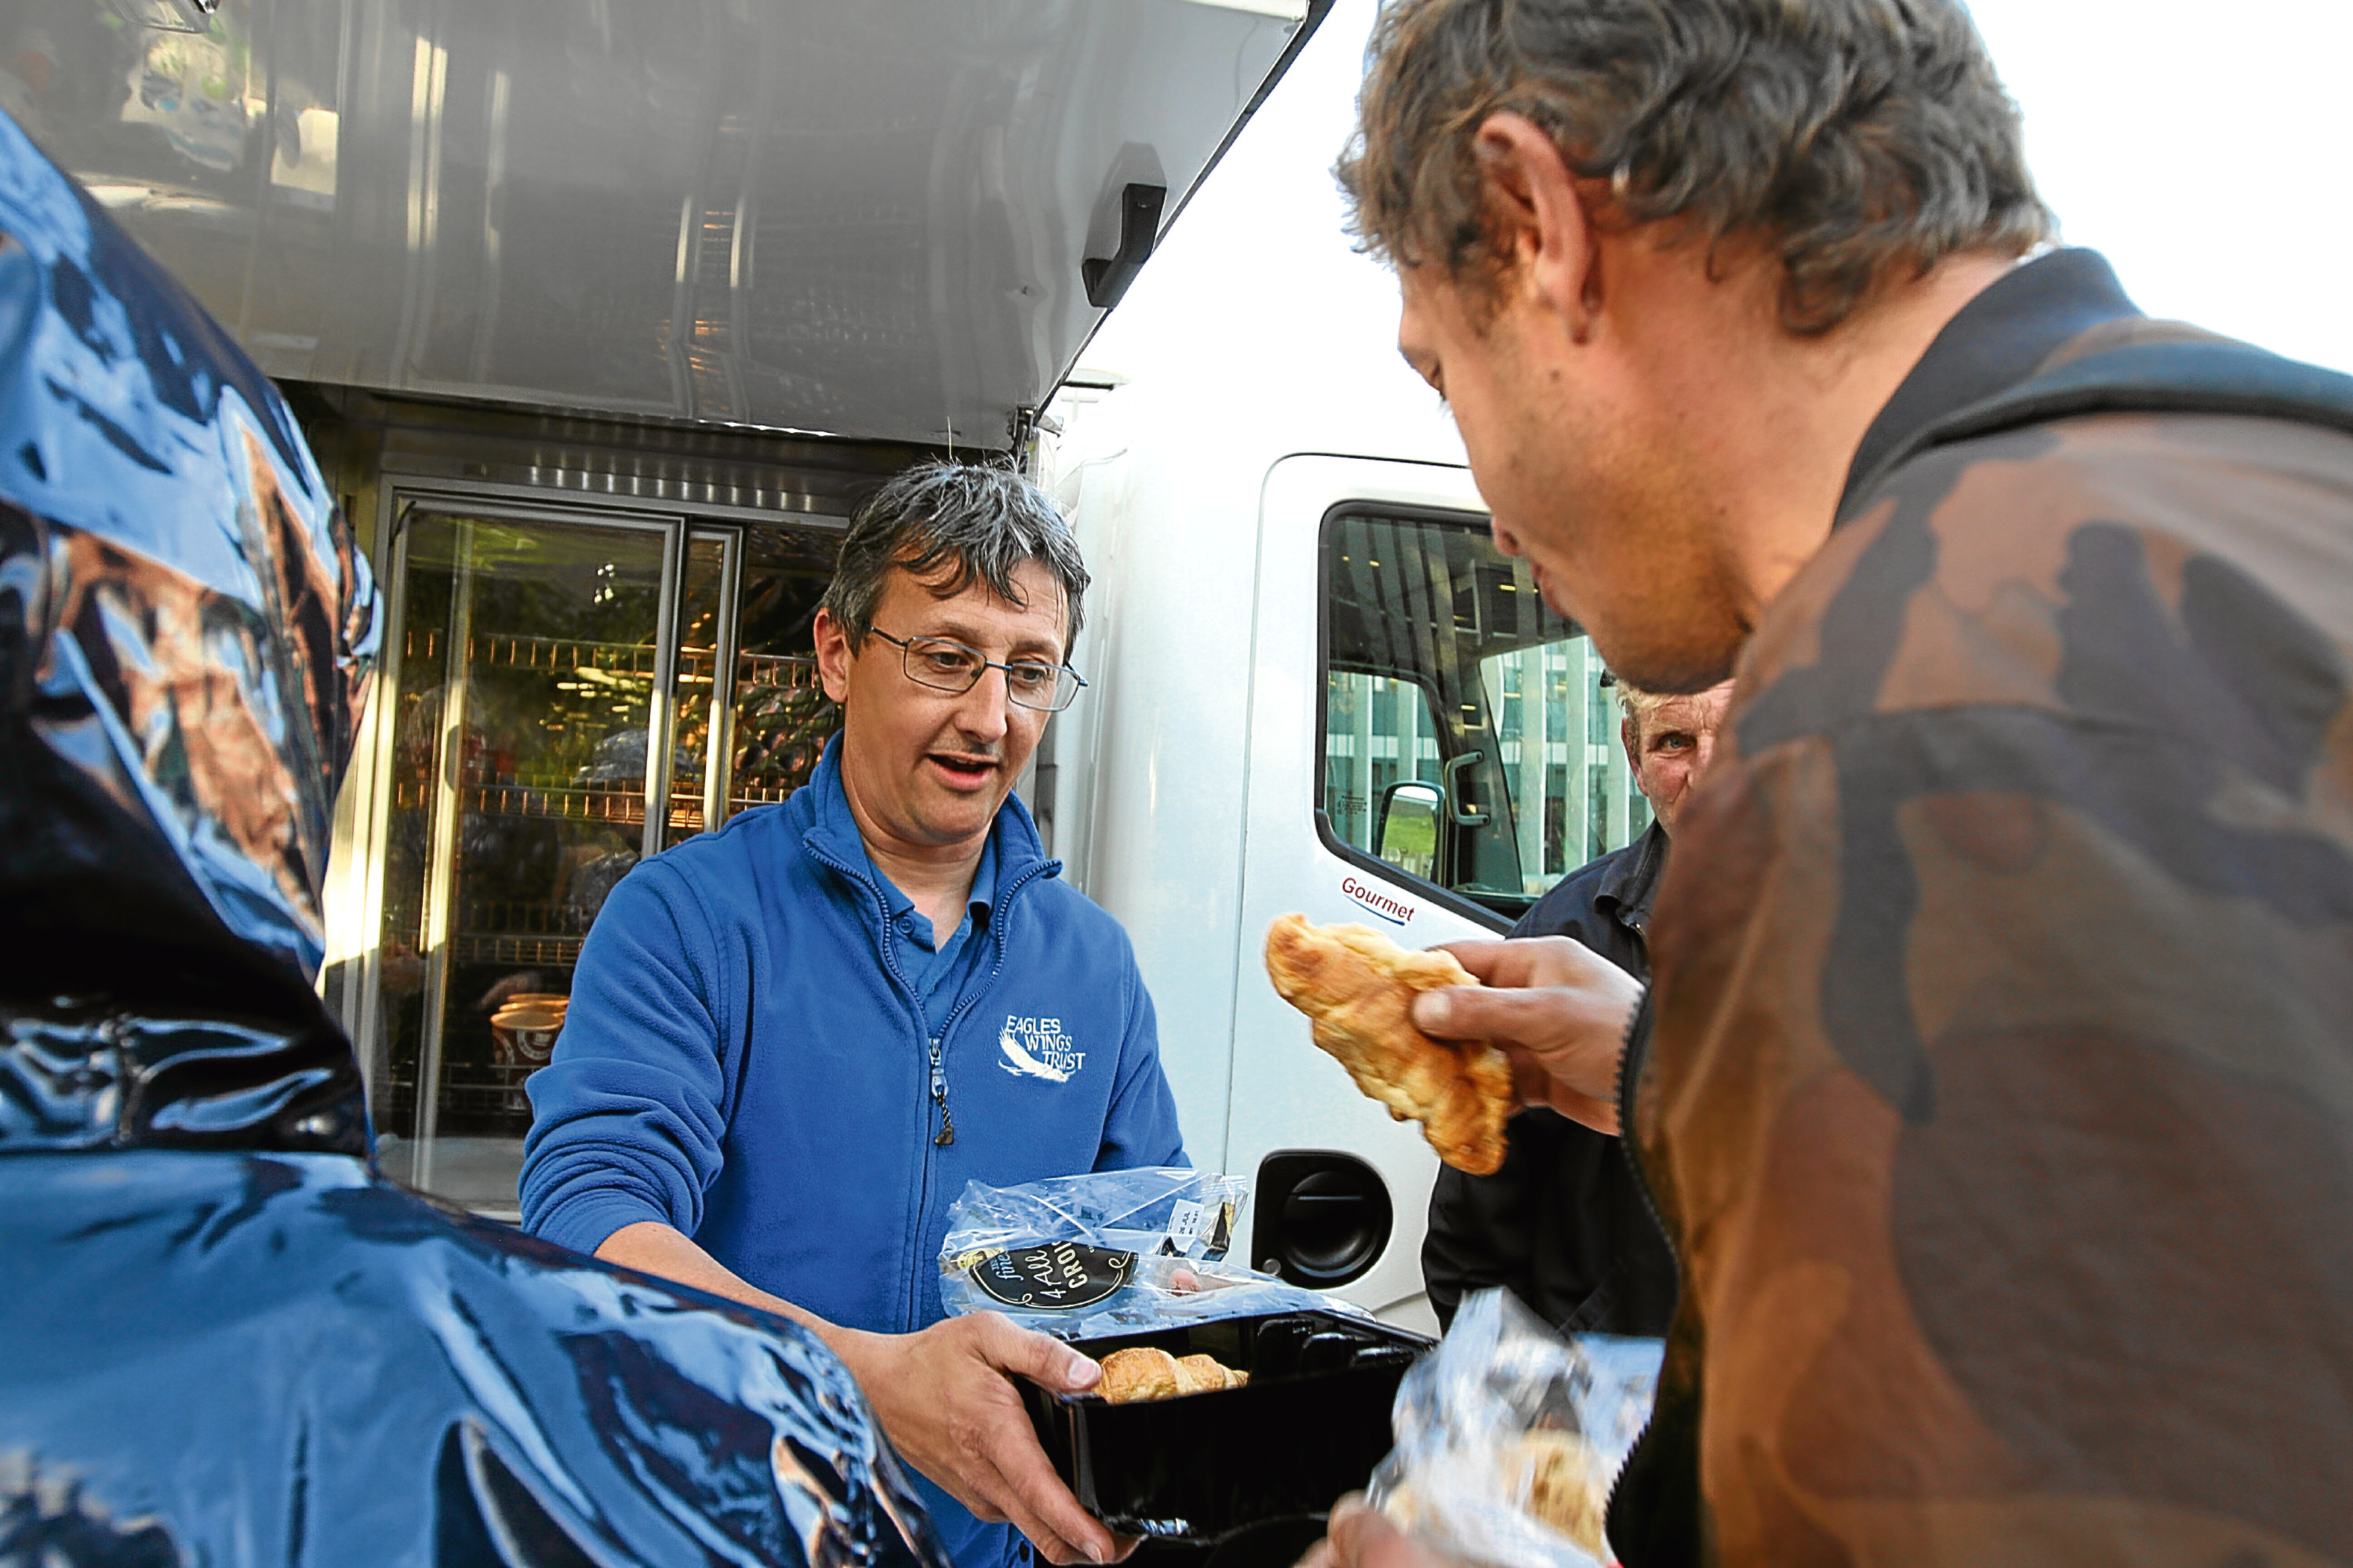 Eagles Wings Trust founder Mike Cordiner serves food and coffee from its van.